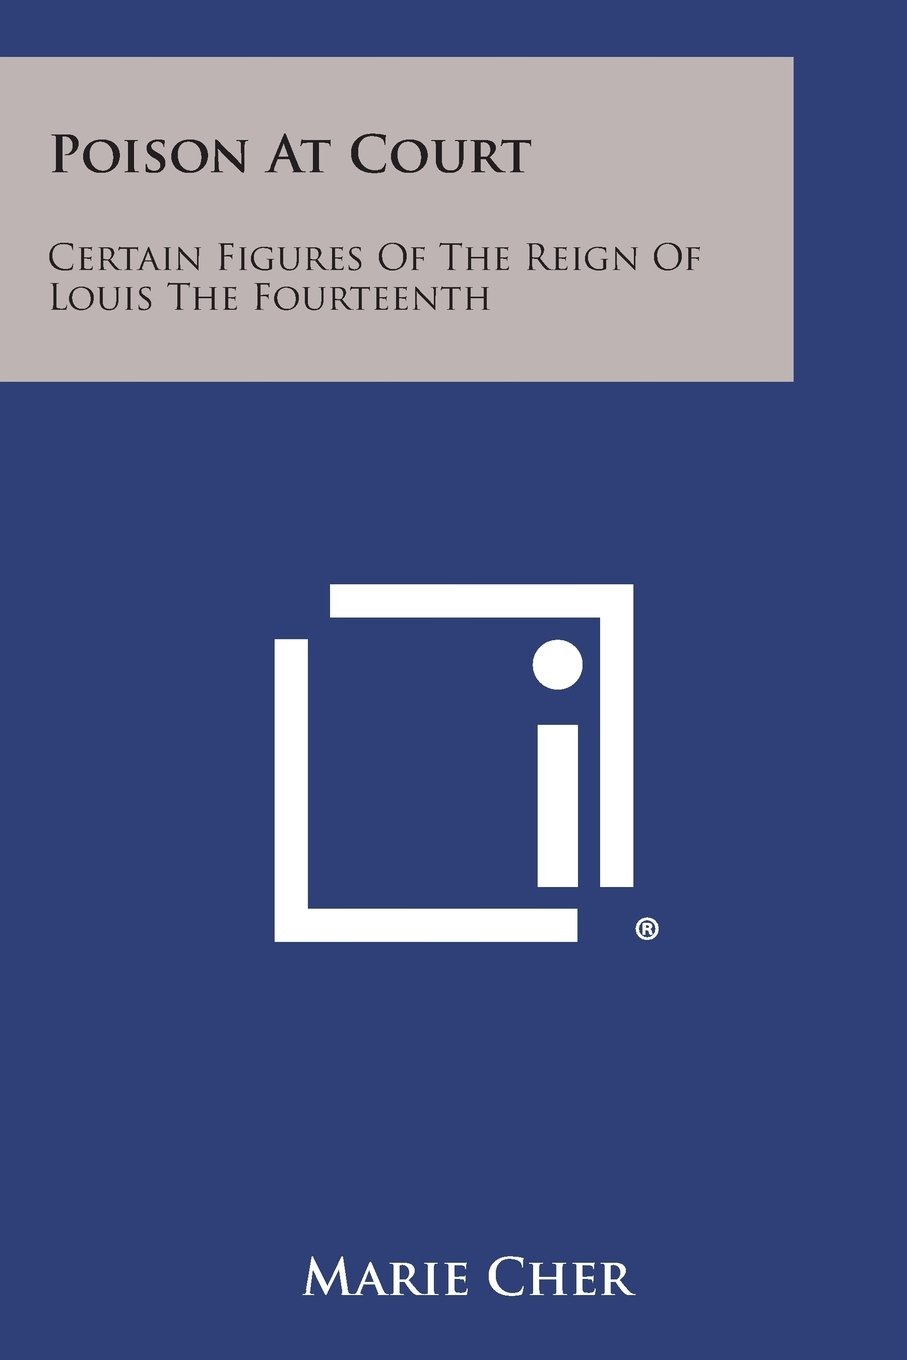 Poison at Court: Certain Figures of the Reign of Louis the Fourteenth pdf